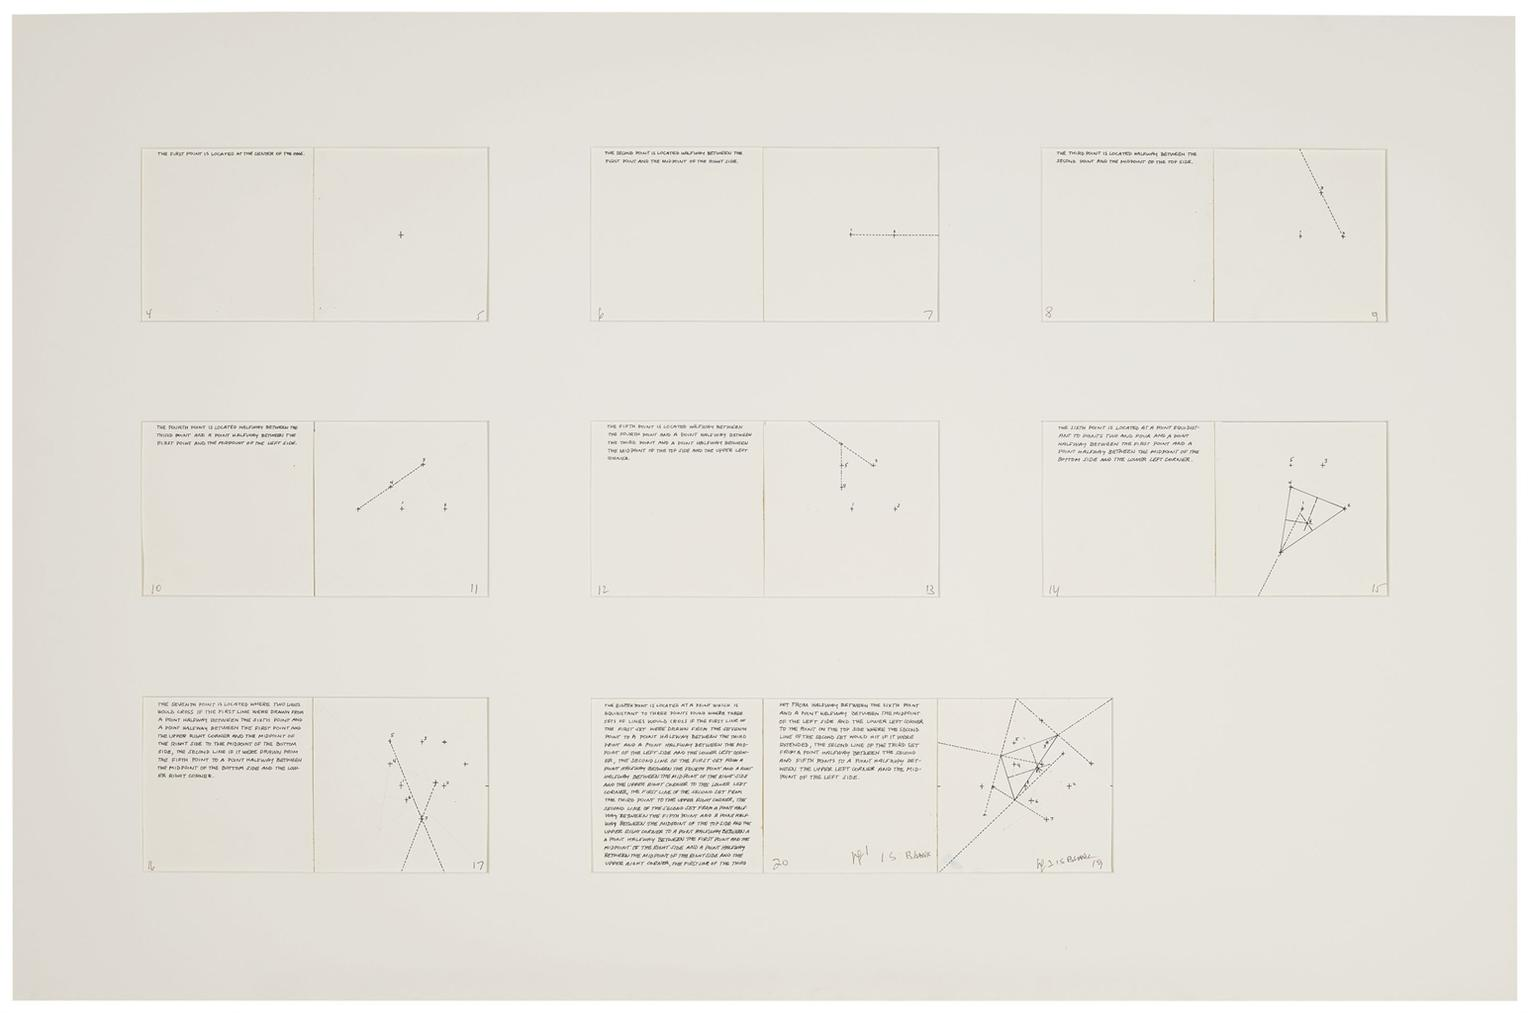 Sol LeWitt-Working Drawings For Book, Location Of Eight Points-1974